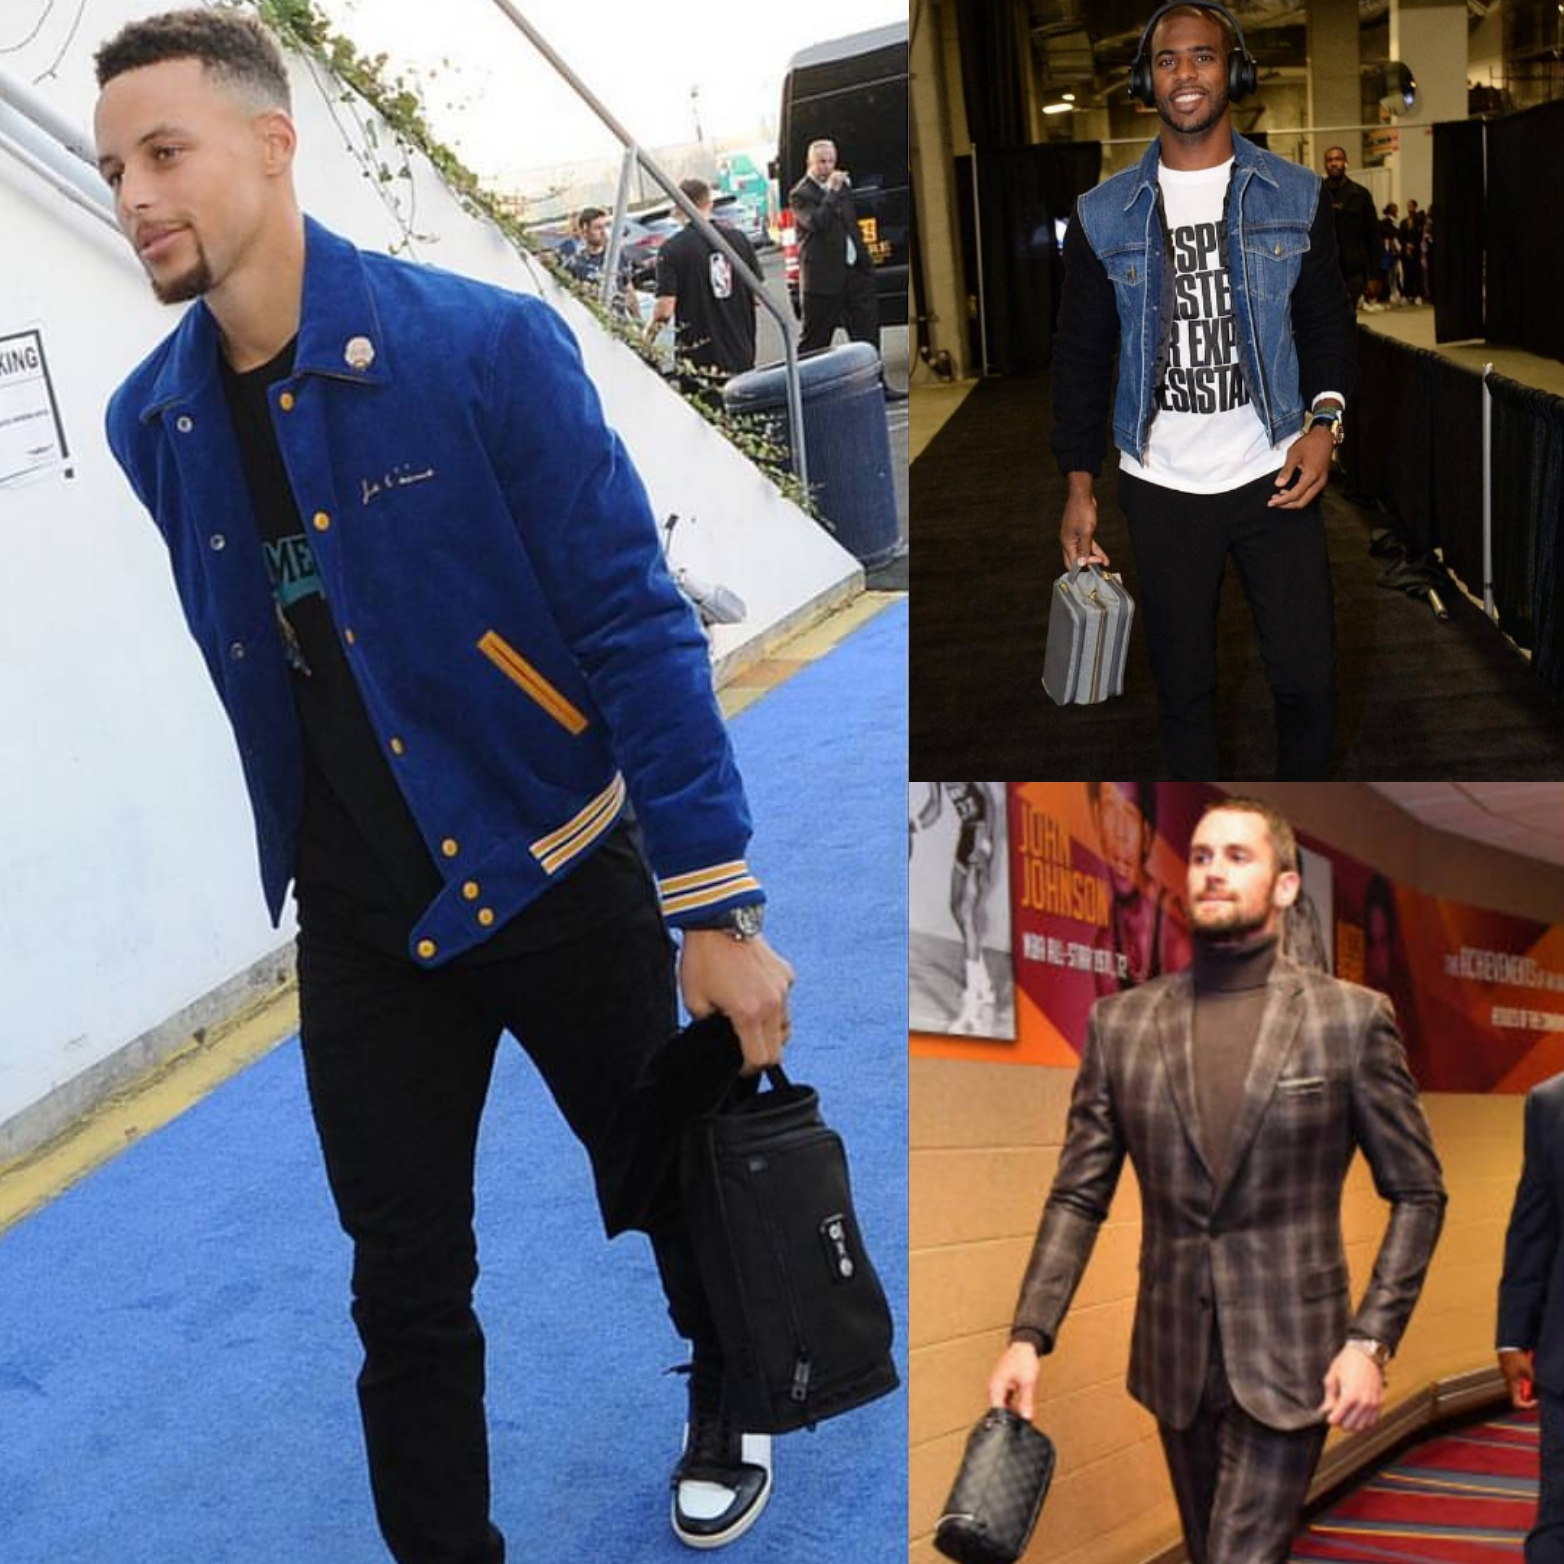 5 Dopp Kits (toiletry bags) Like Steph Curry, Chris Paul, And Kevin Love Sport For Game Day.